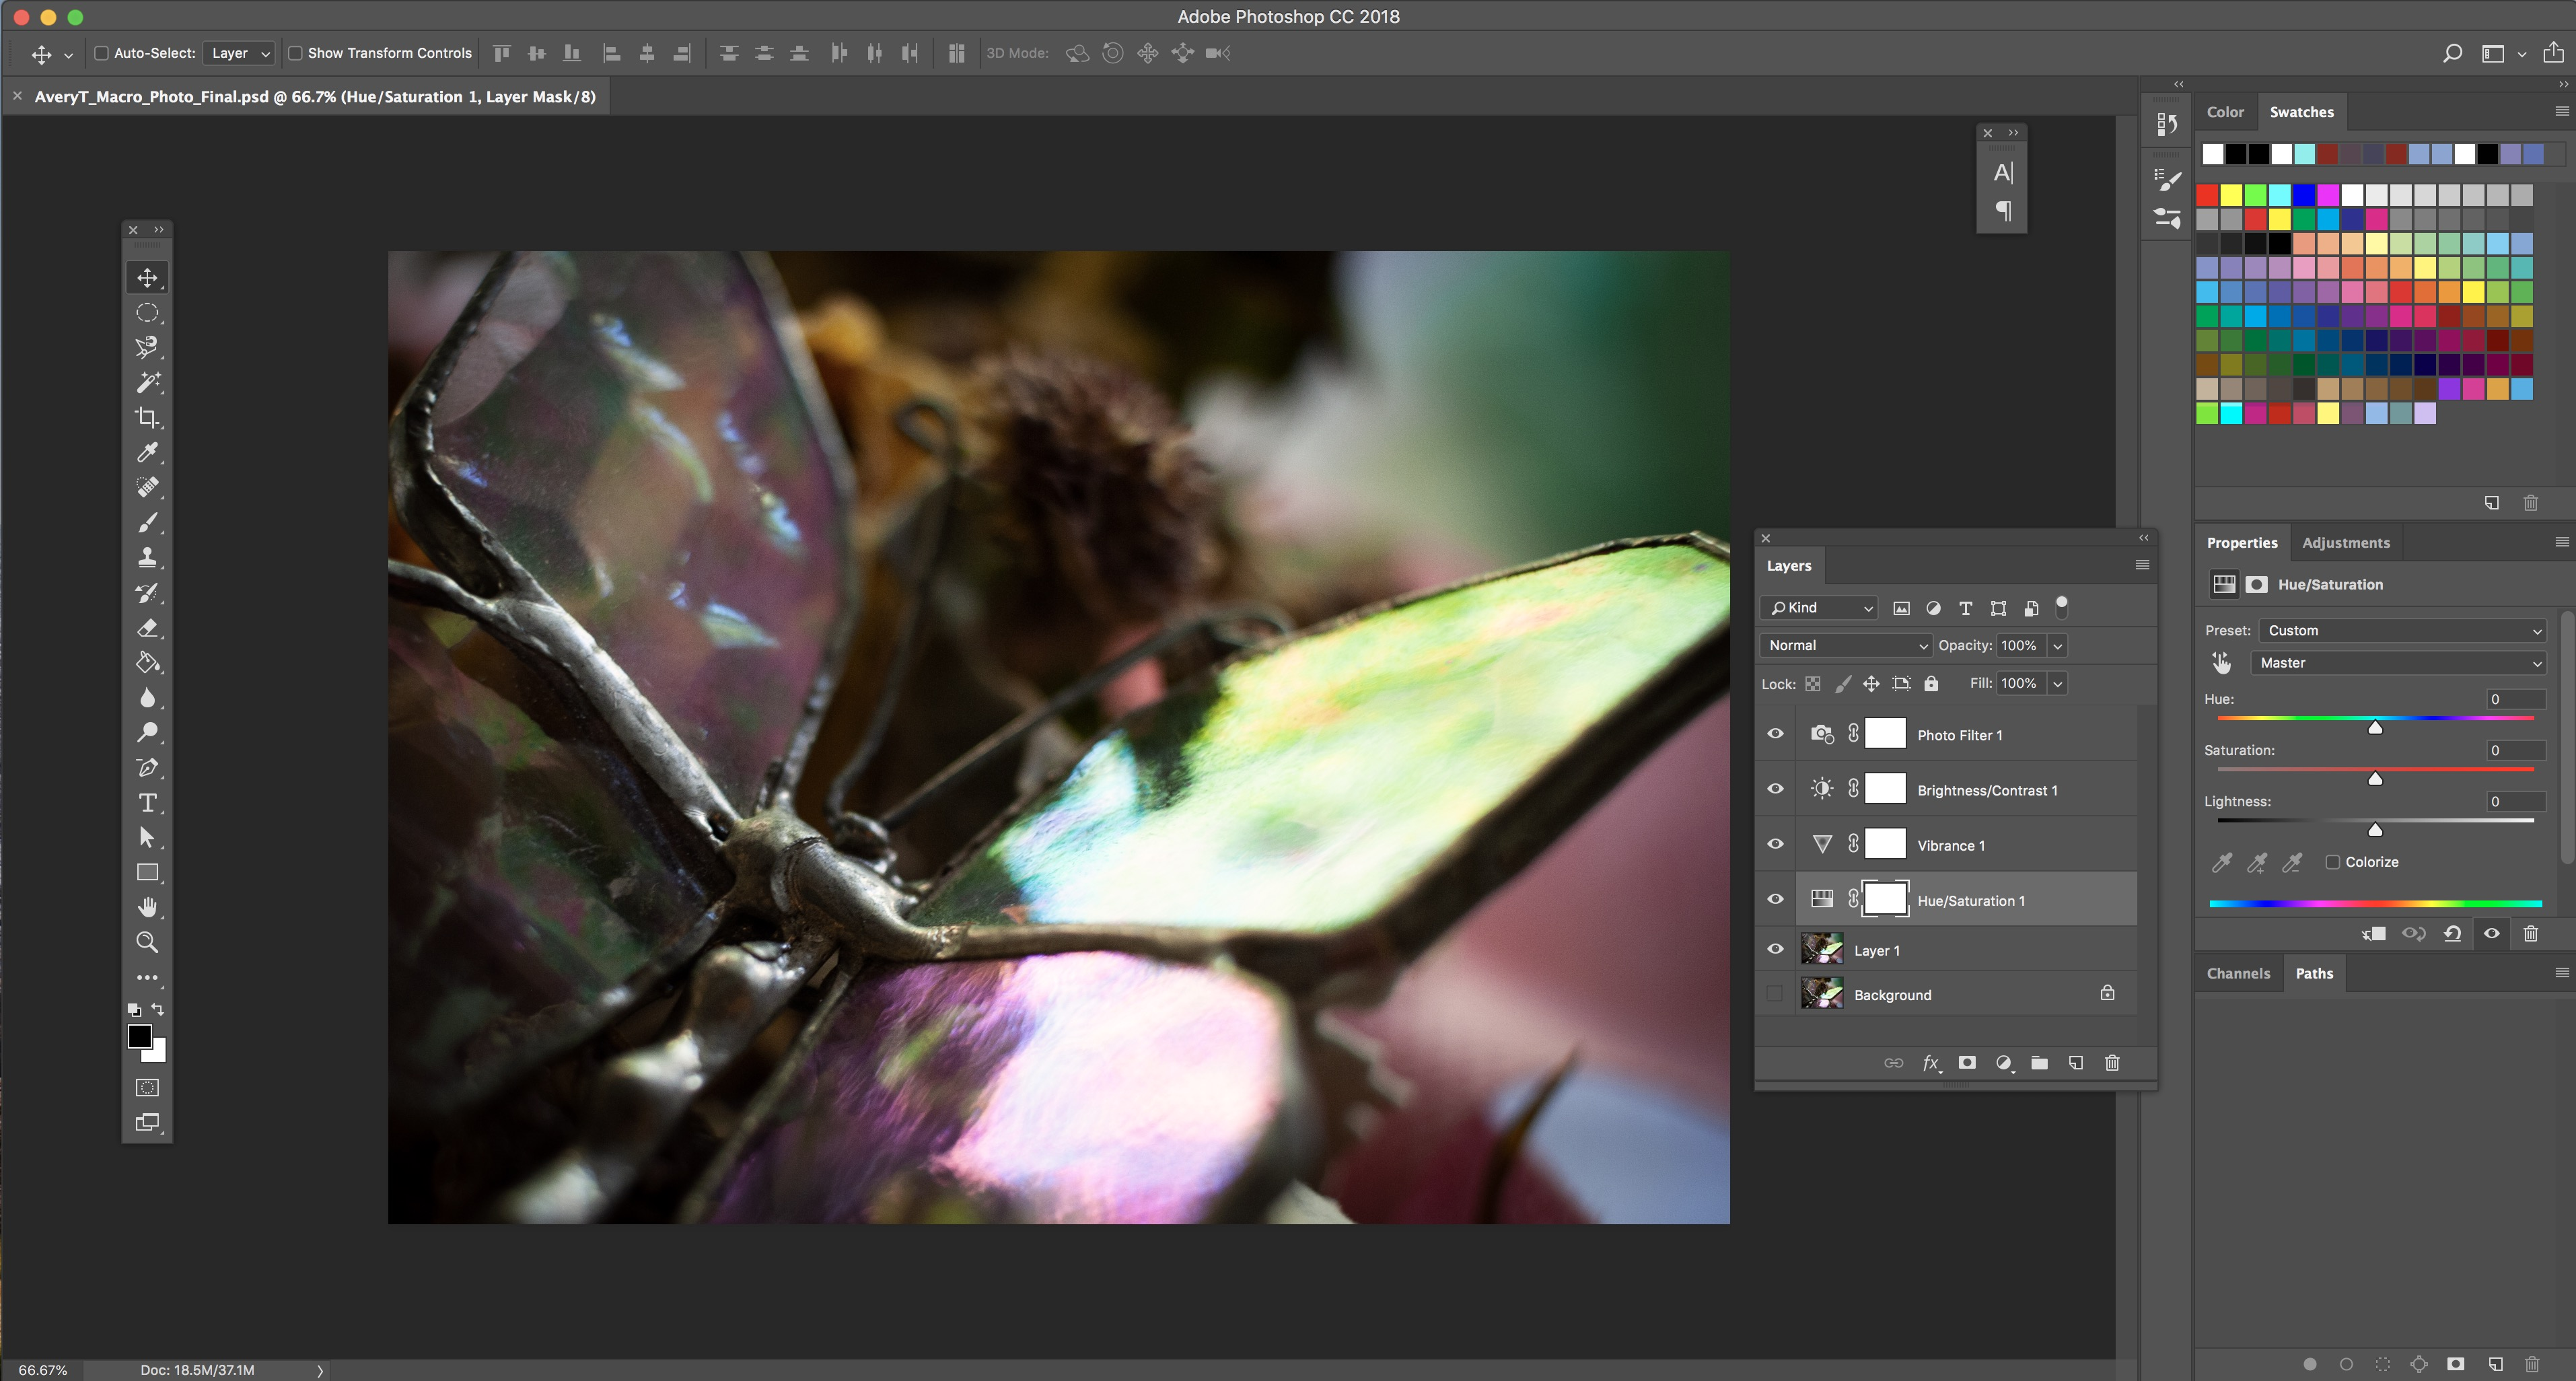 Screenshot of Workspace in Adobe Photoshop for Macrophotography